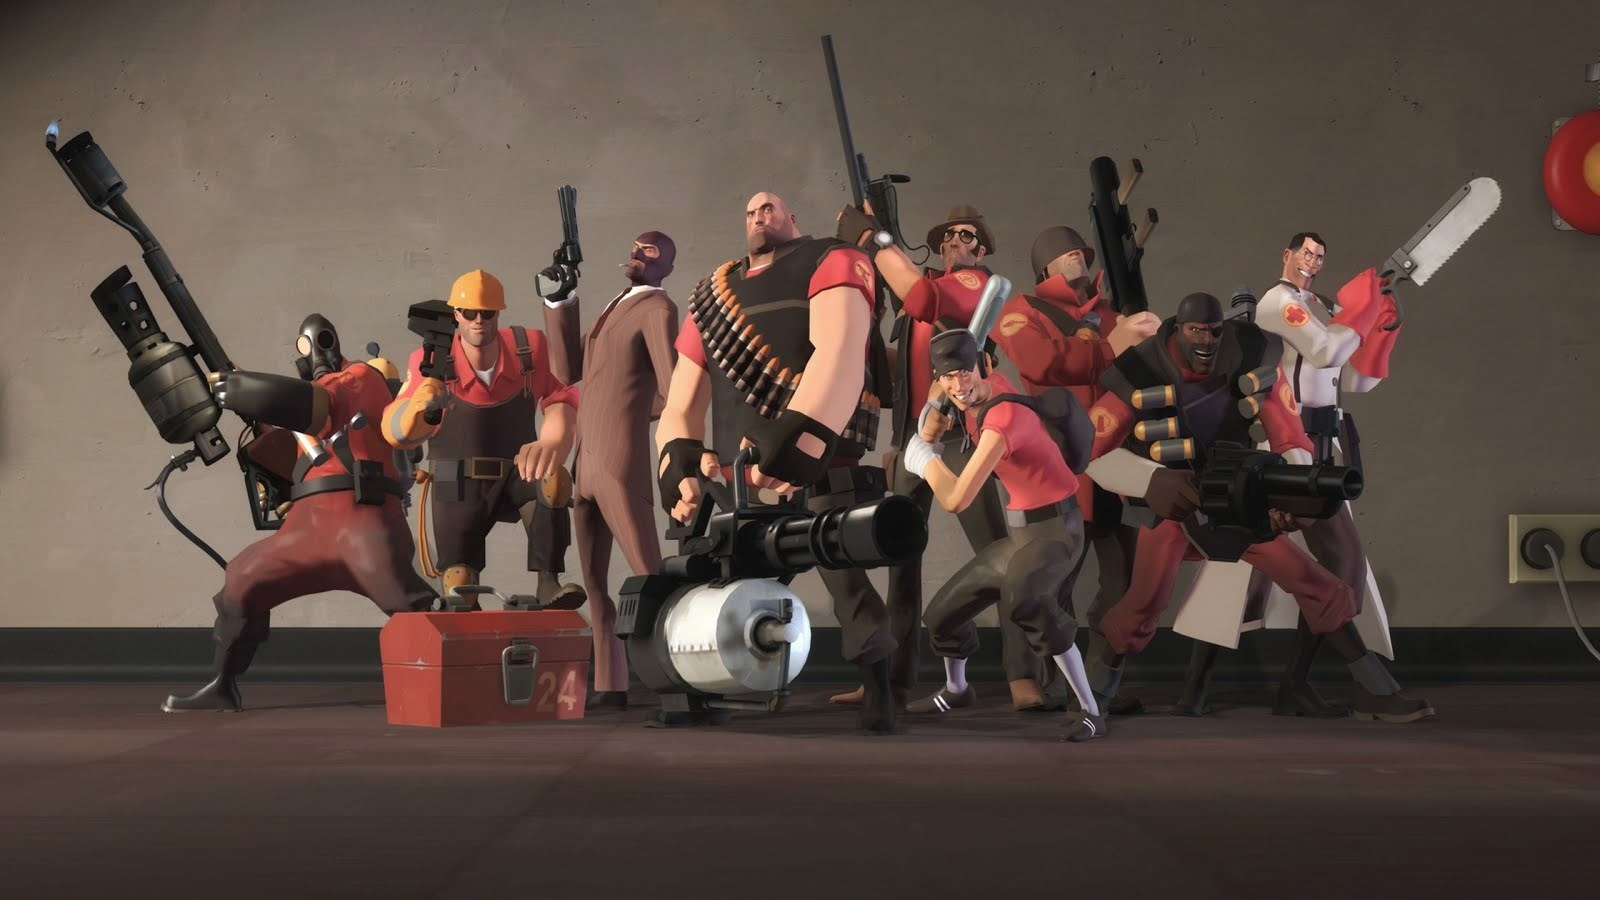 video game team fortress - photo #22